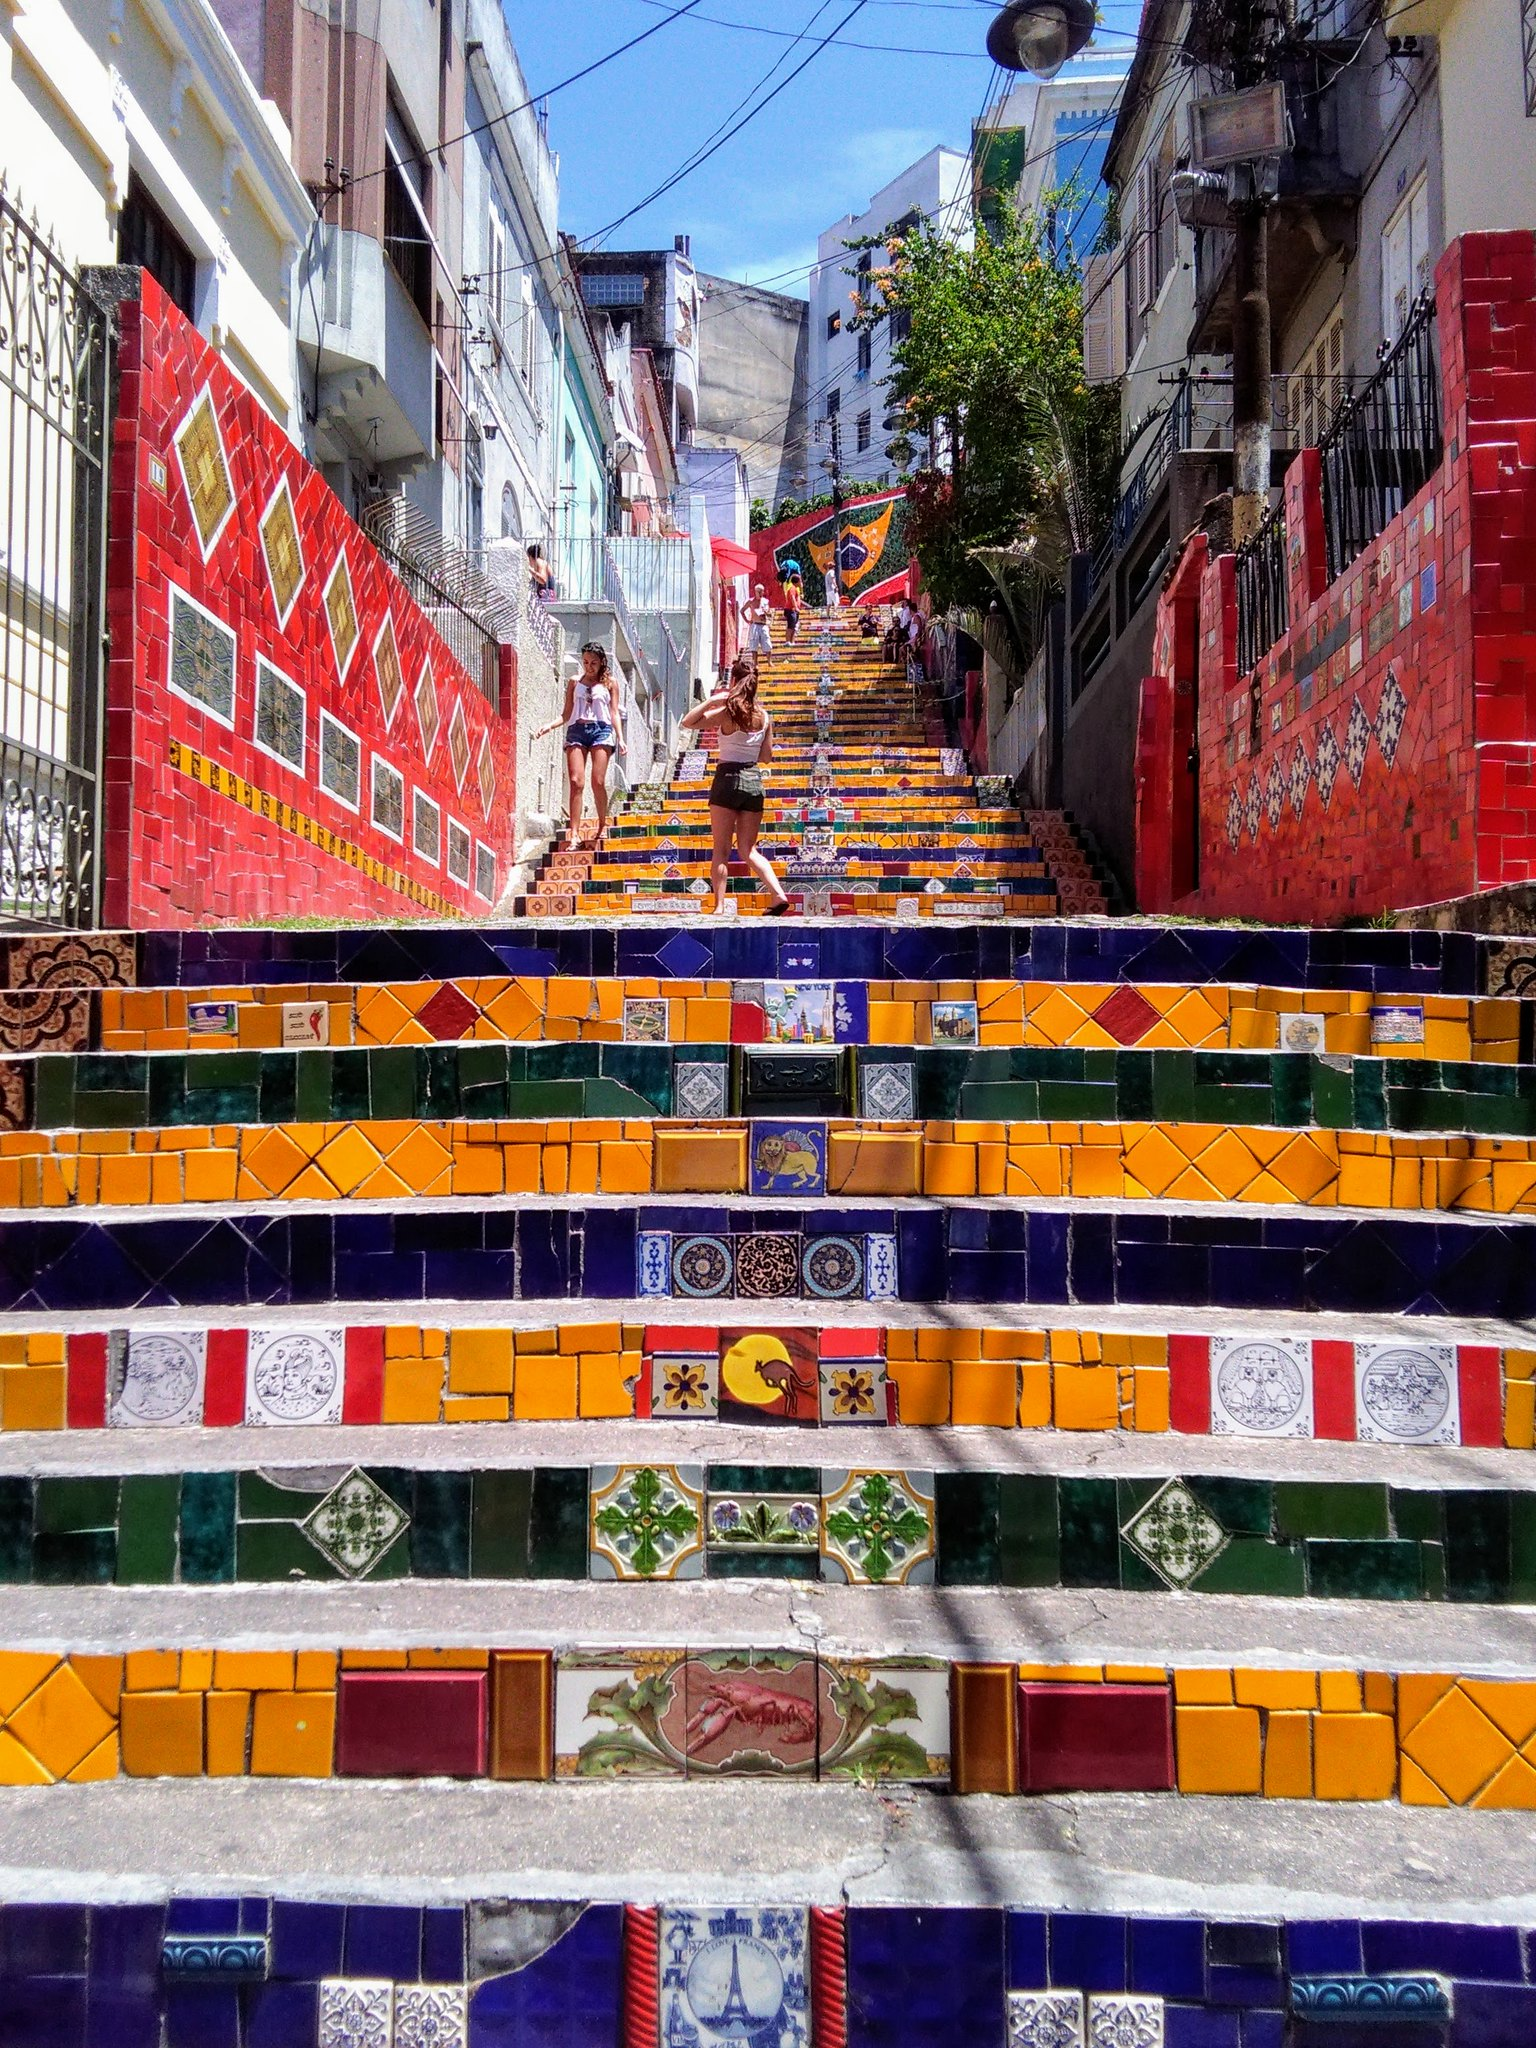 The Selaron Steps in Rio